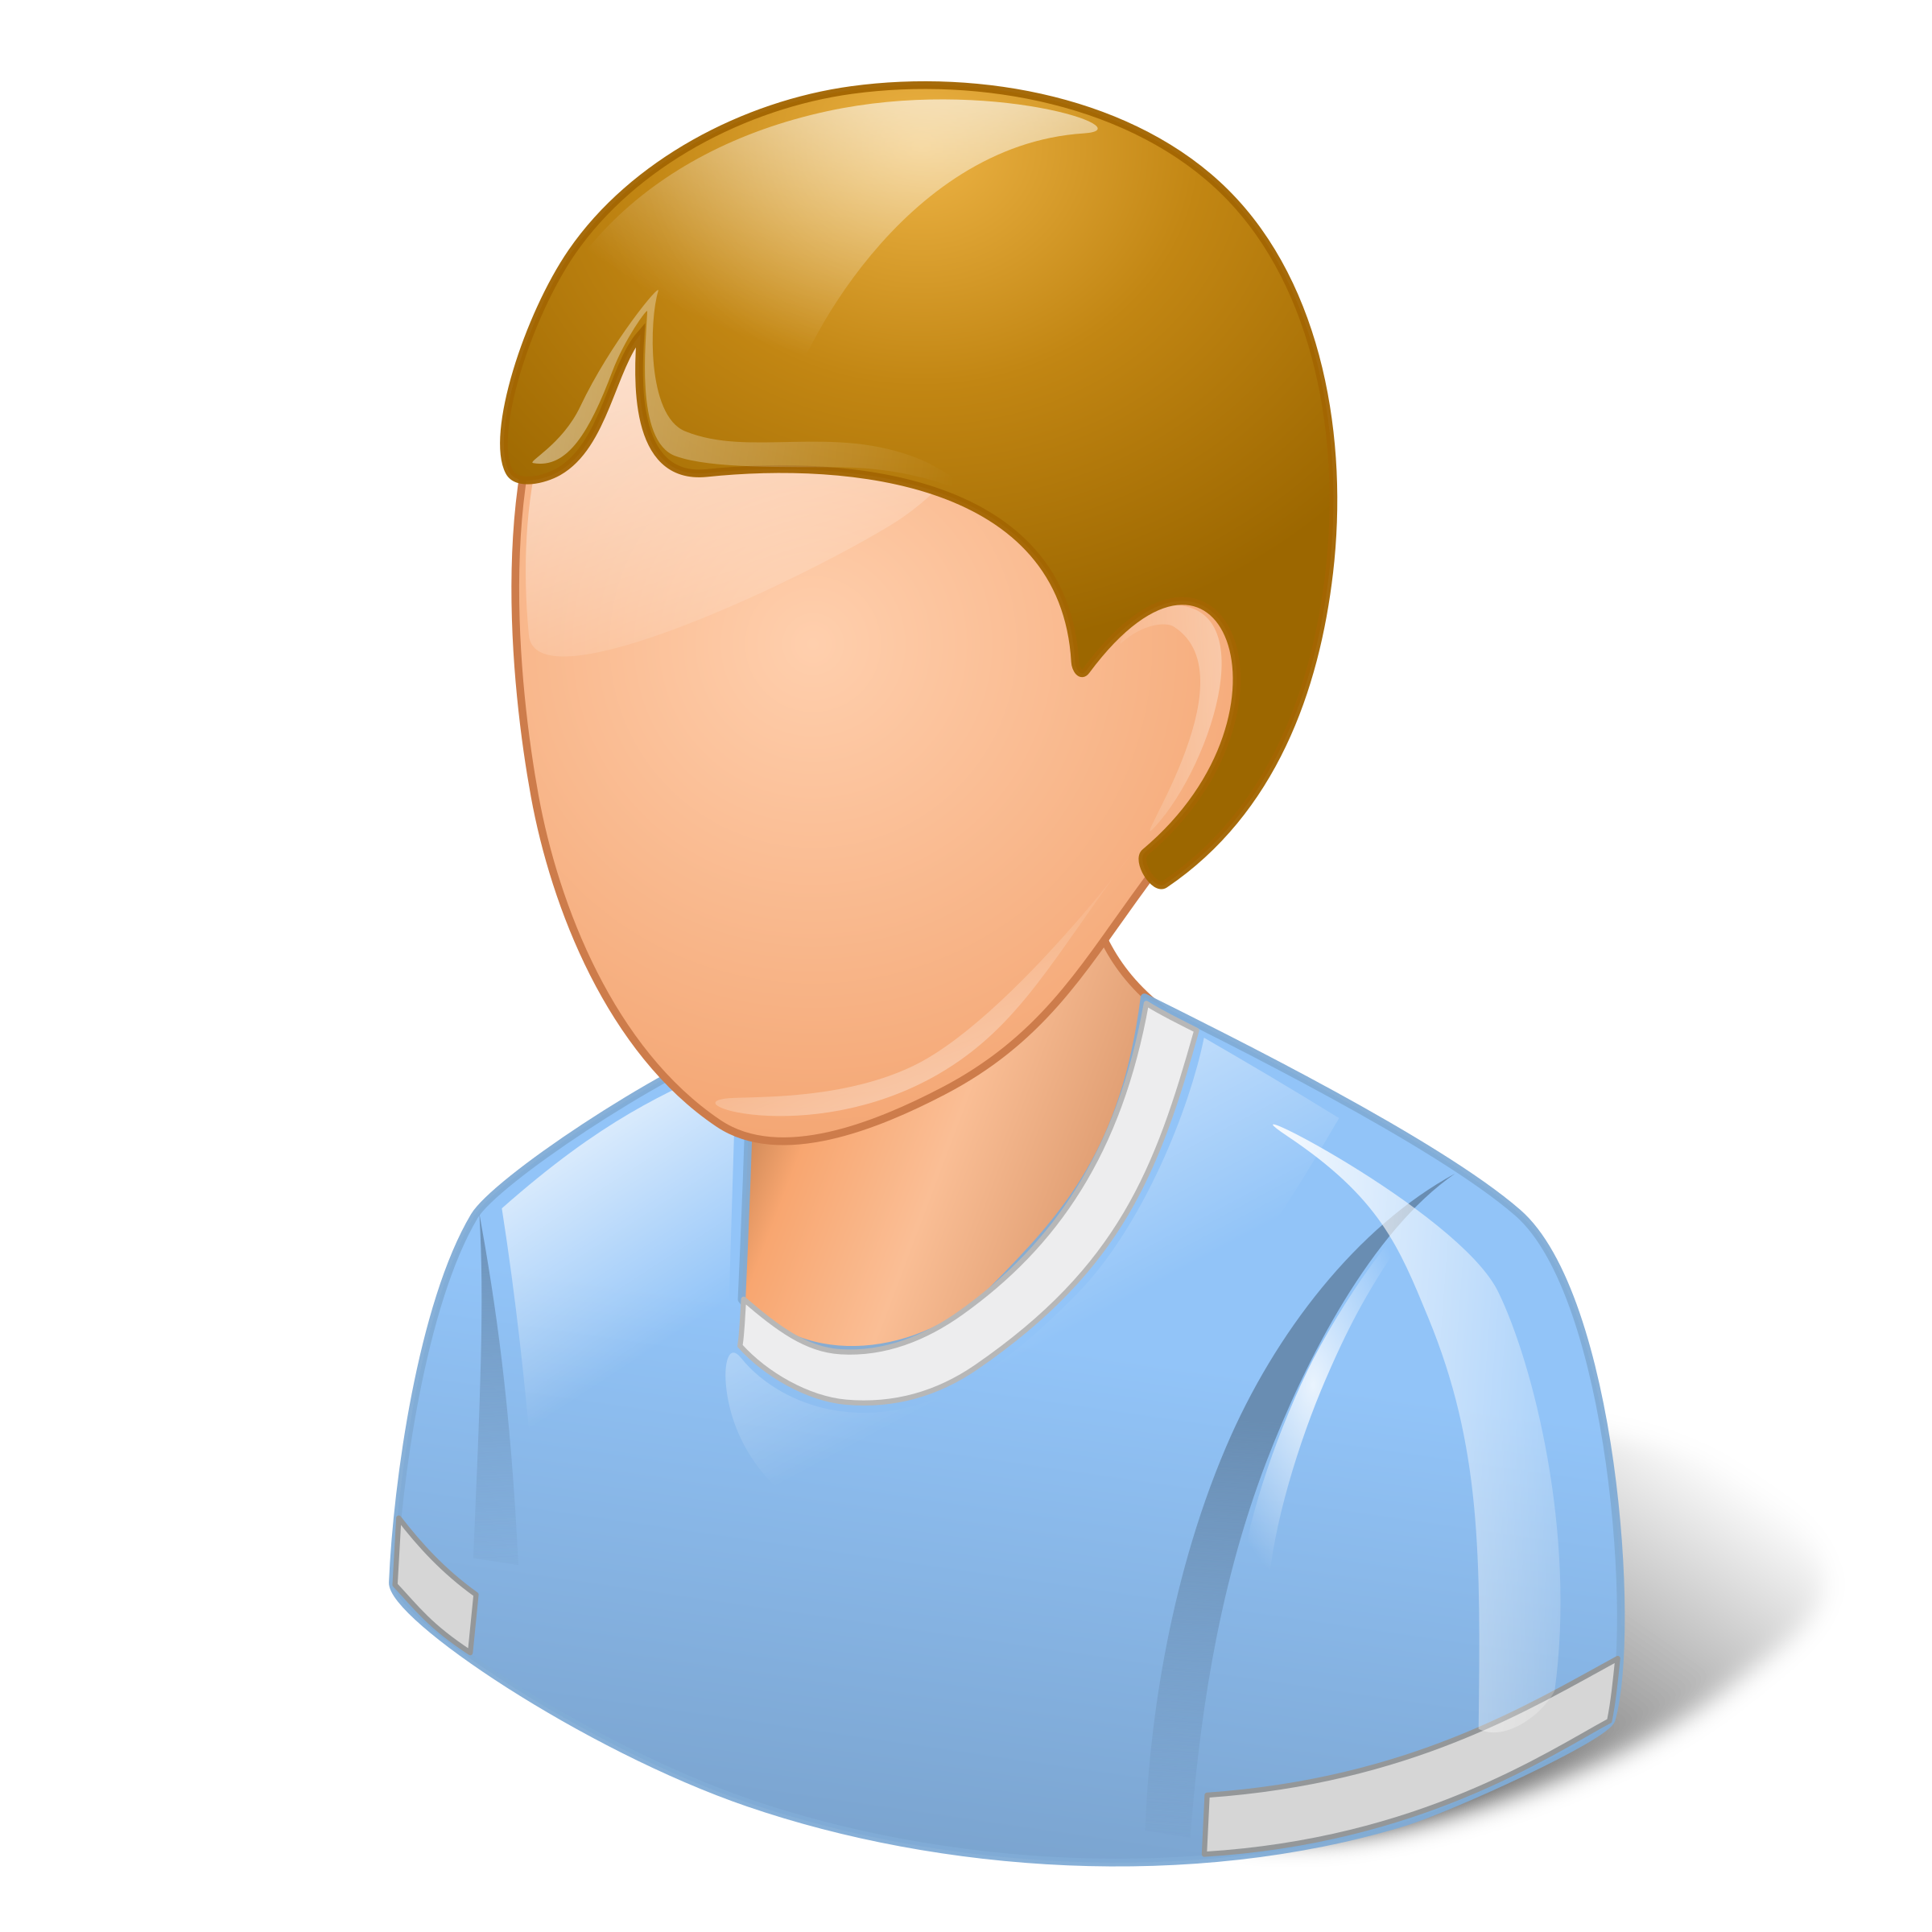 Patient person free download. Clock clipart patience